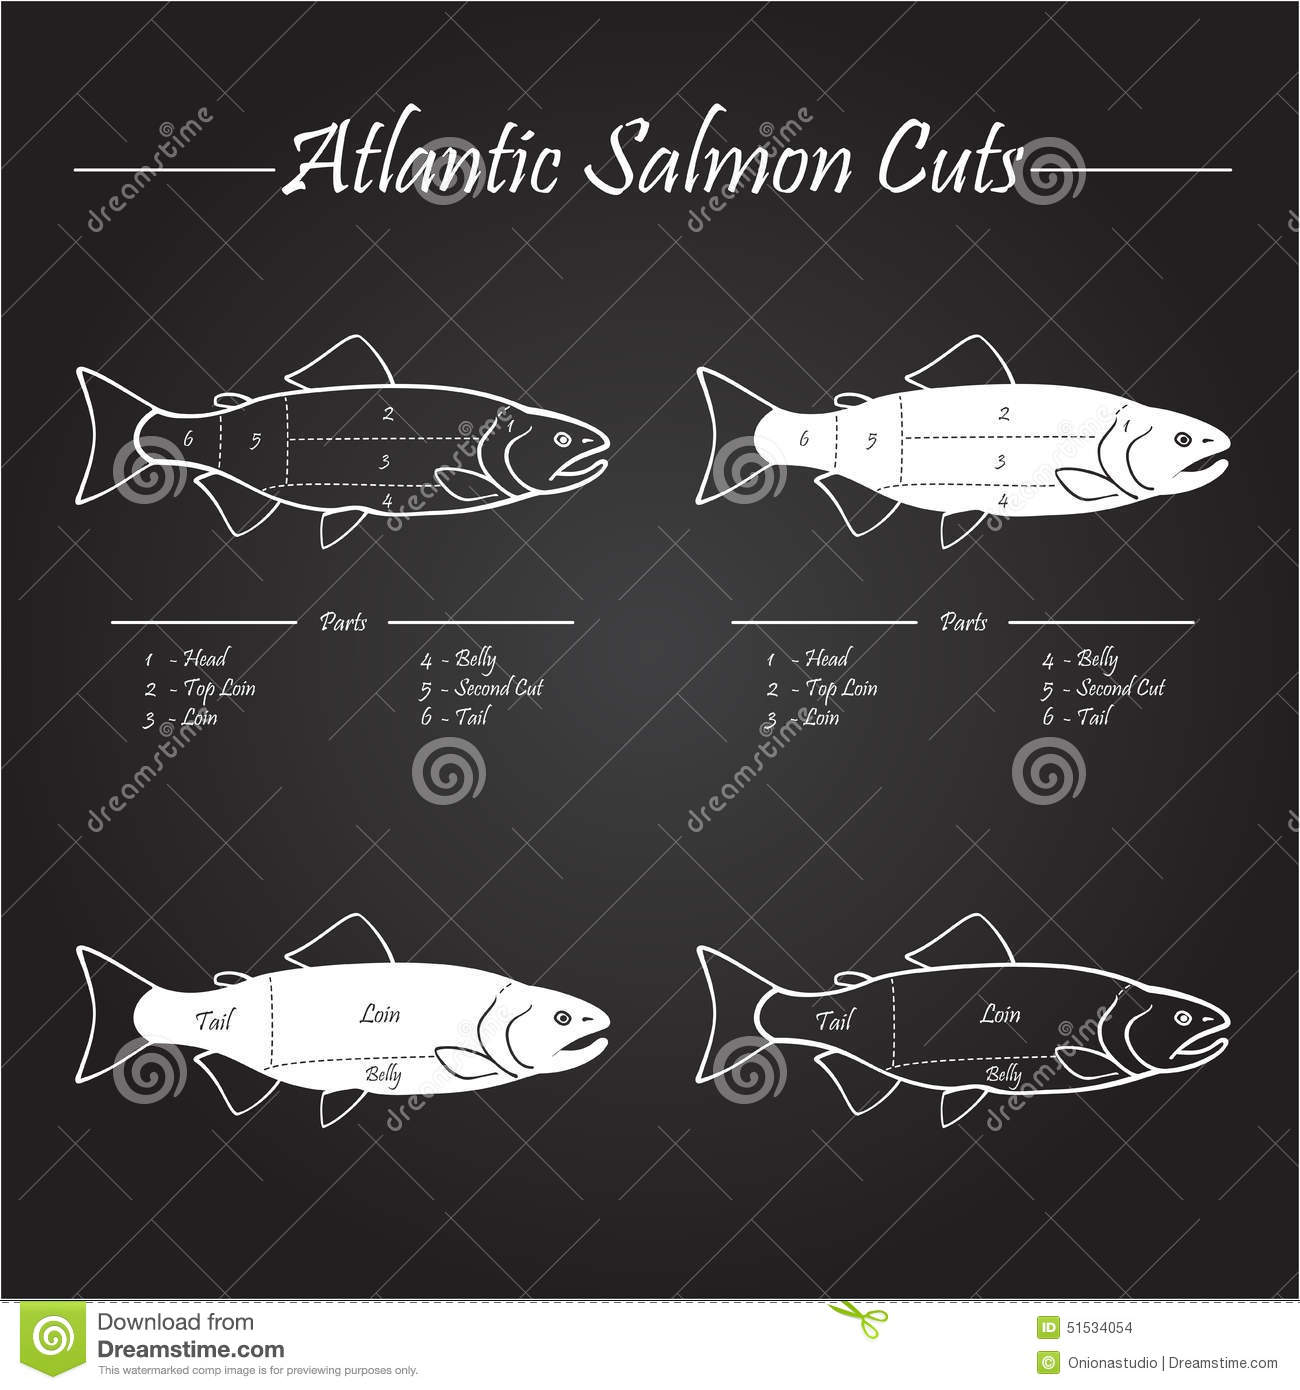 Atlantic Salmon Cuts Diagram Stock Vector